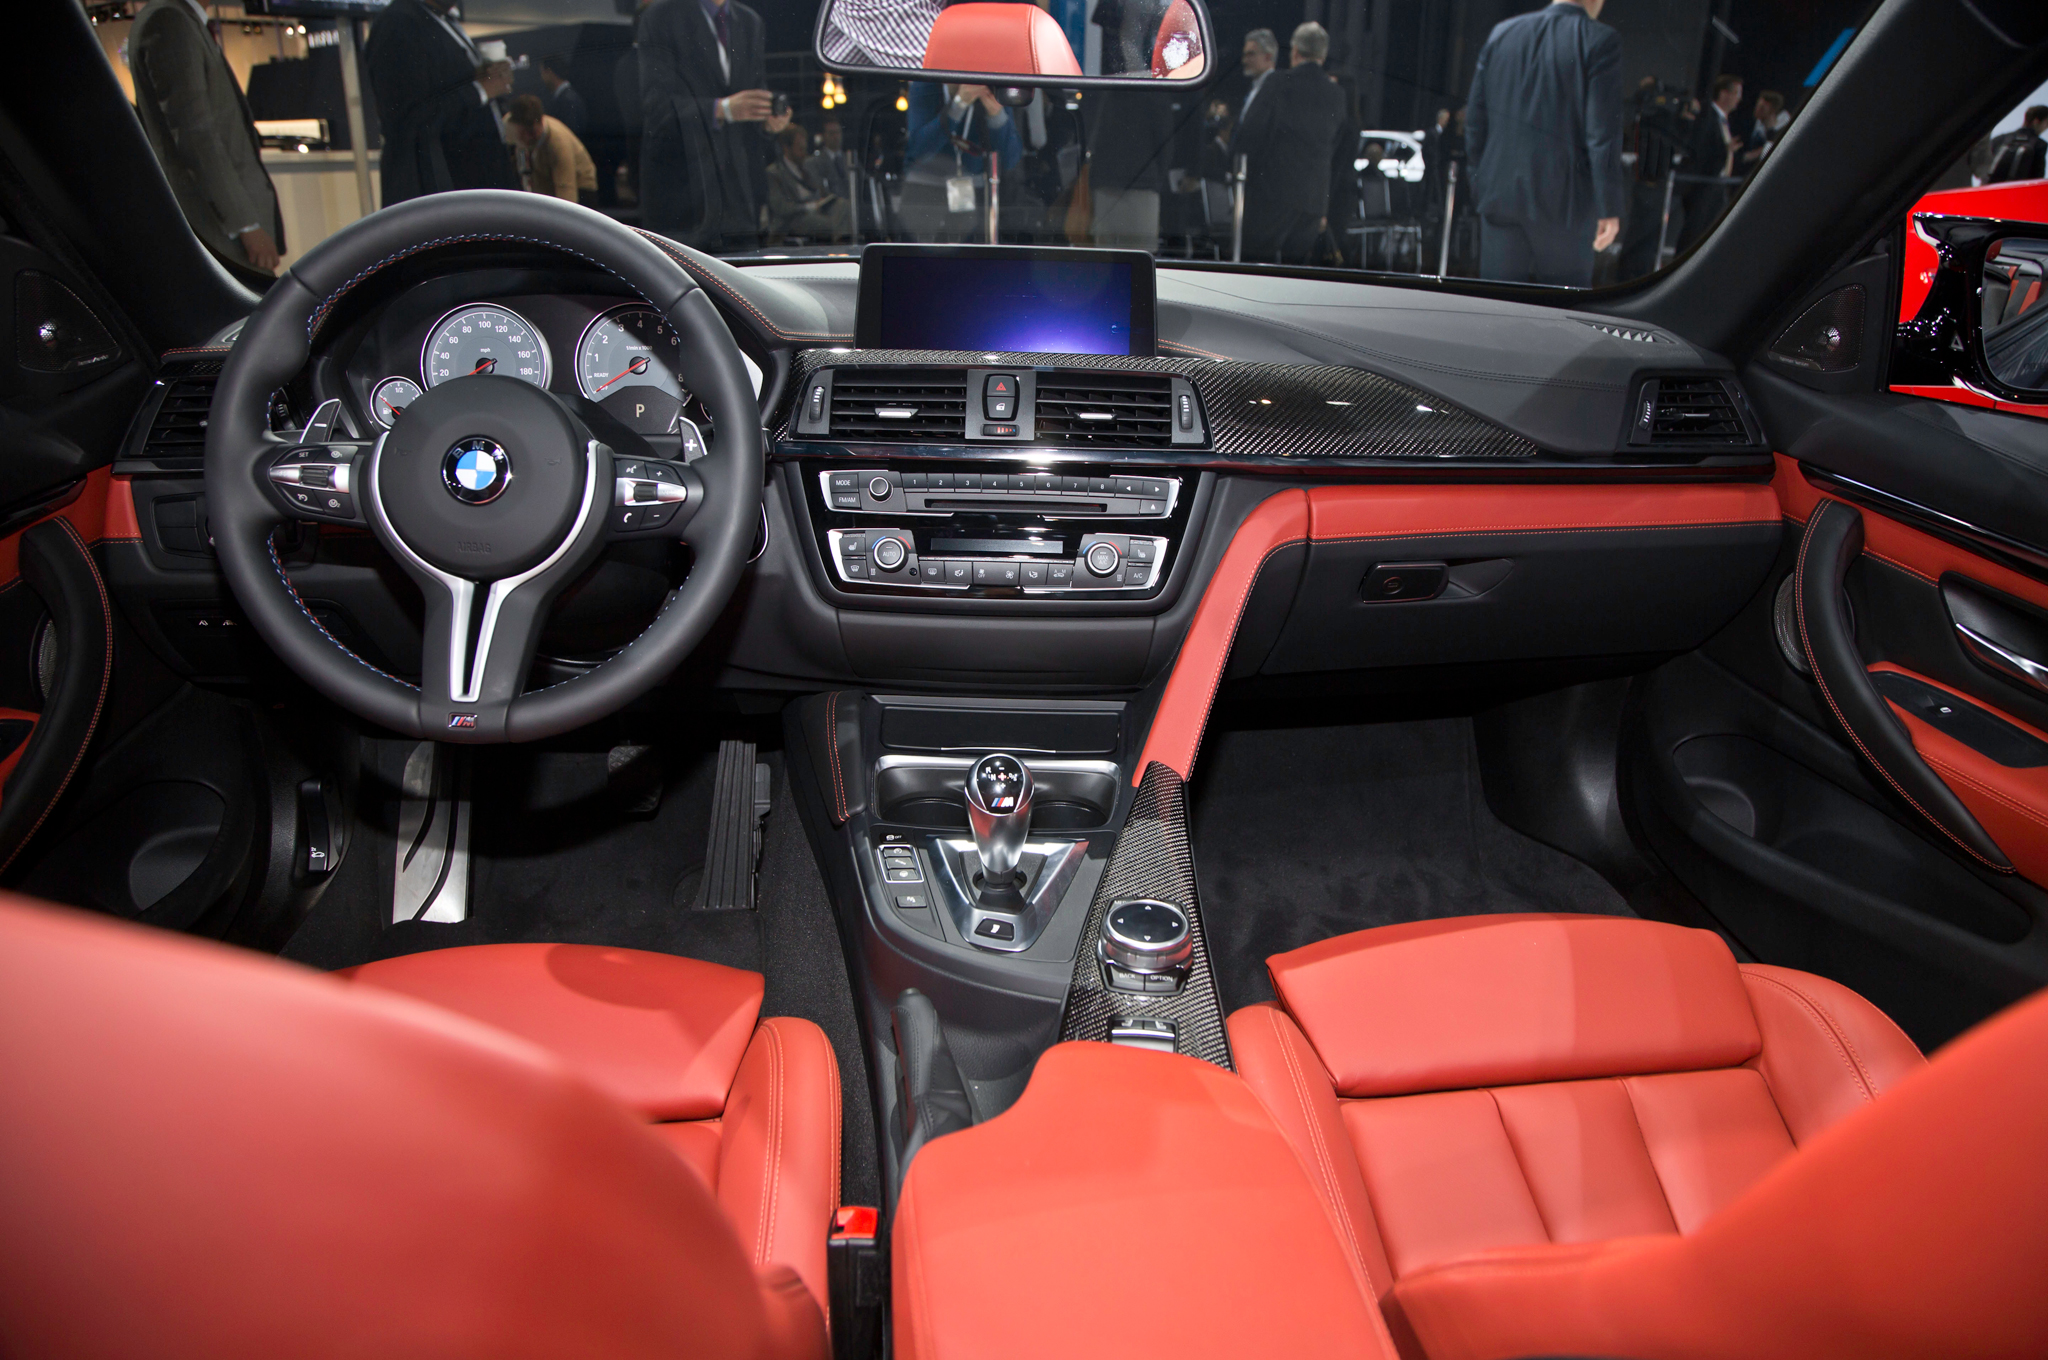 Bmw M Dashboard New Cars Gallery - 2015 bmw m4 convertible price